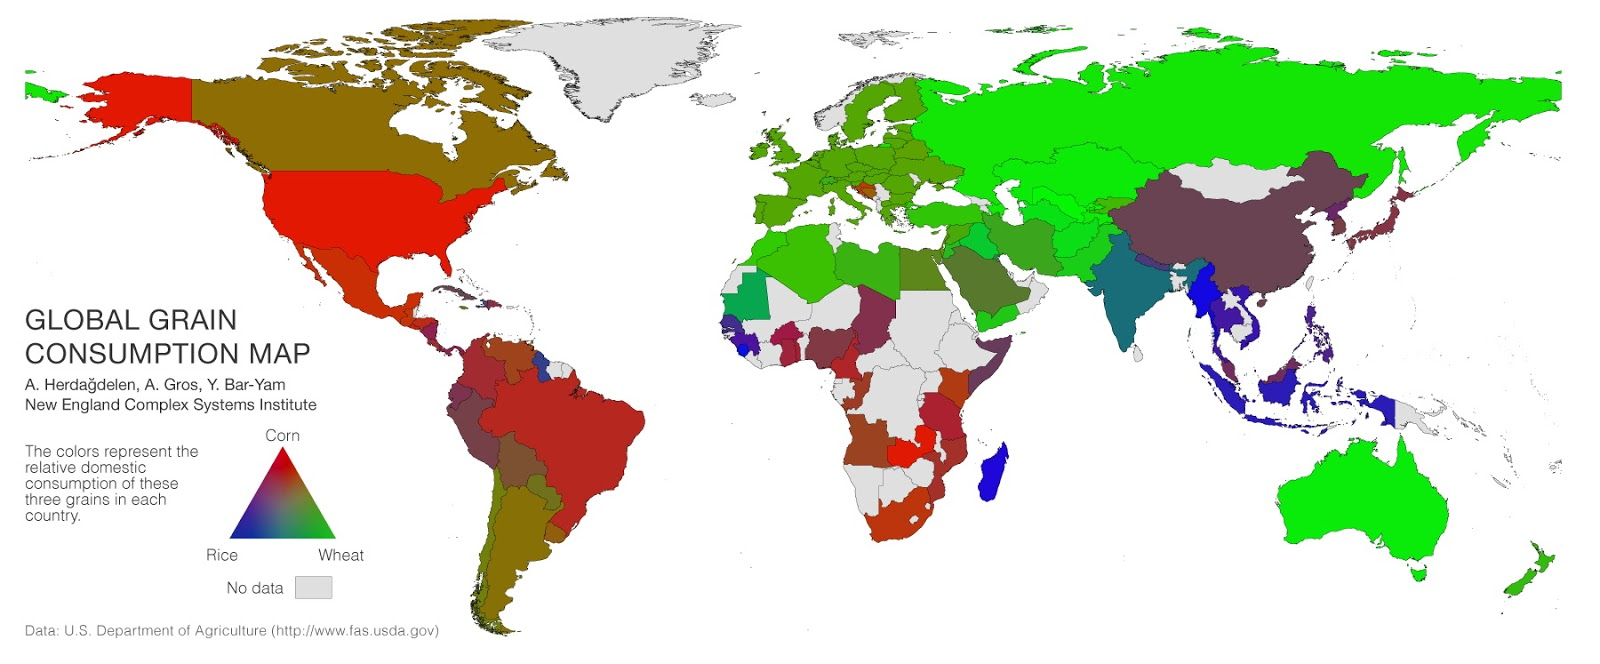 Global grain consumption map